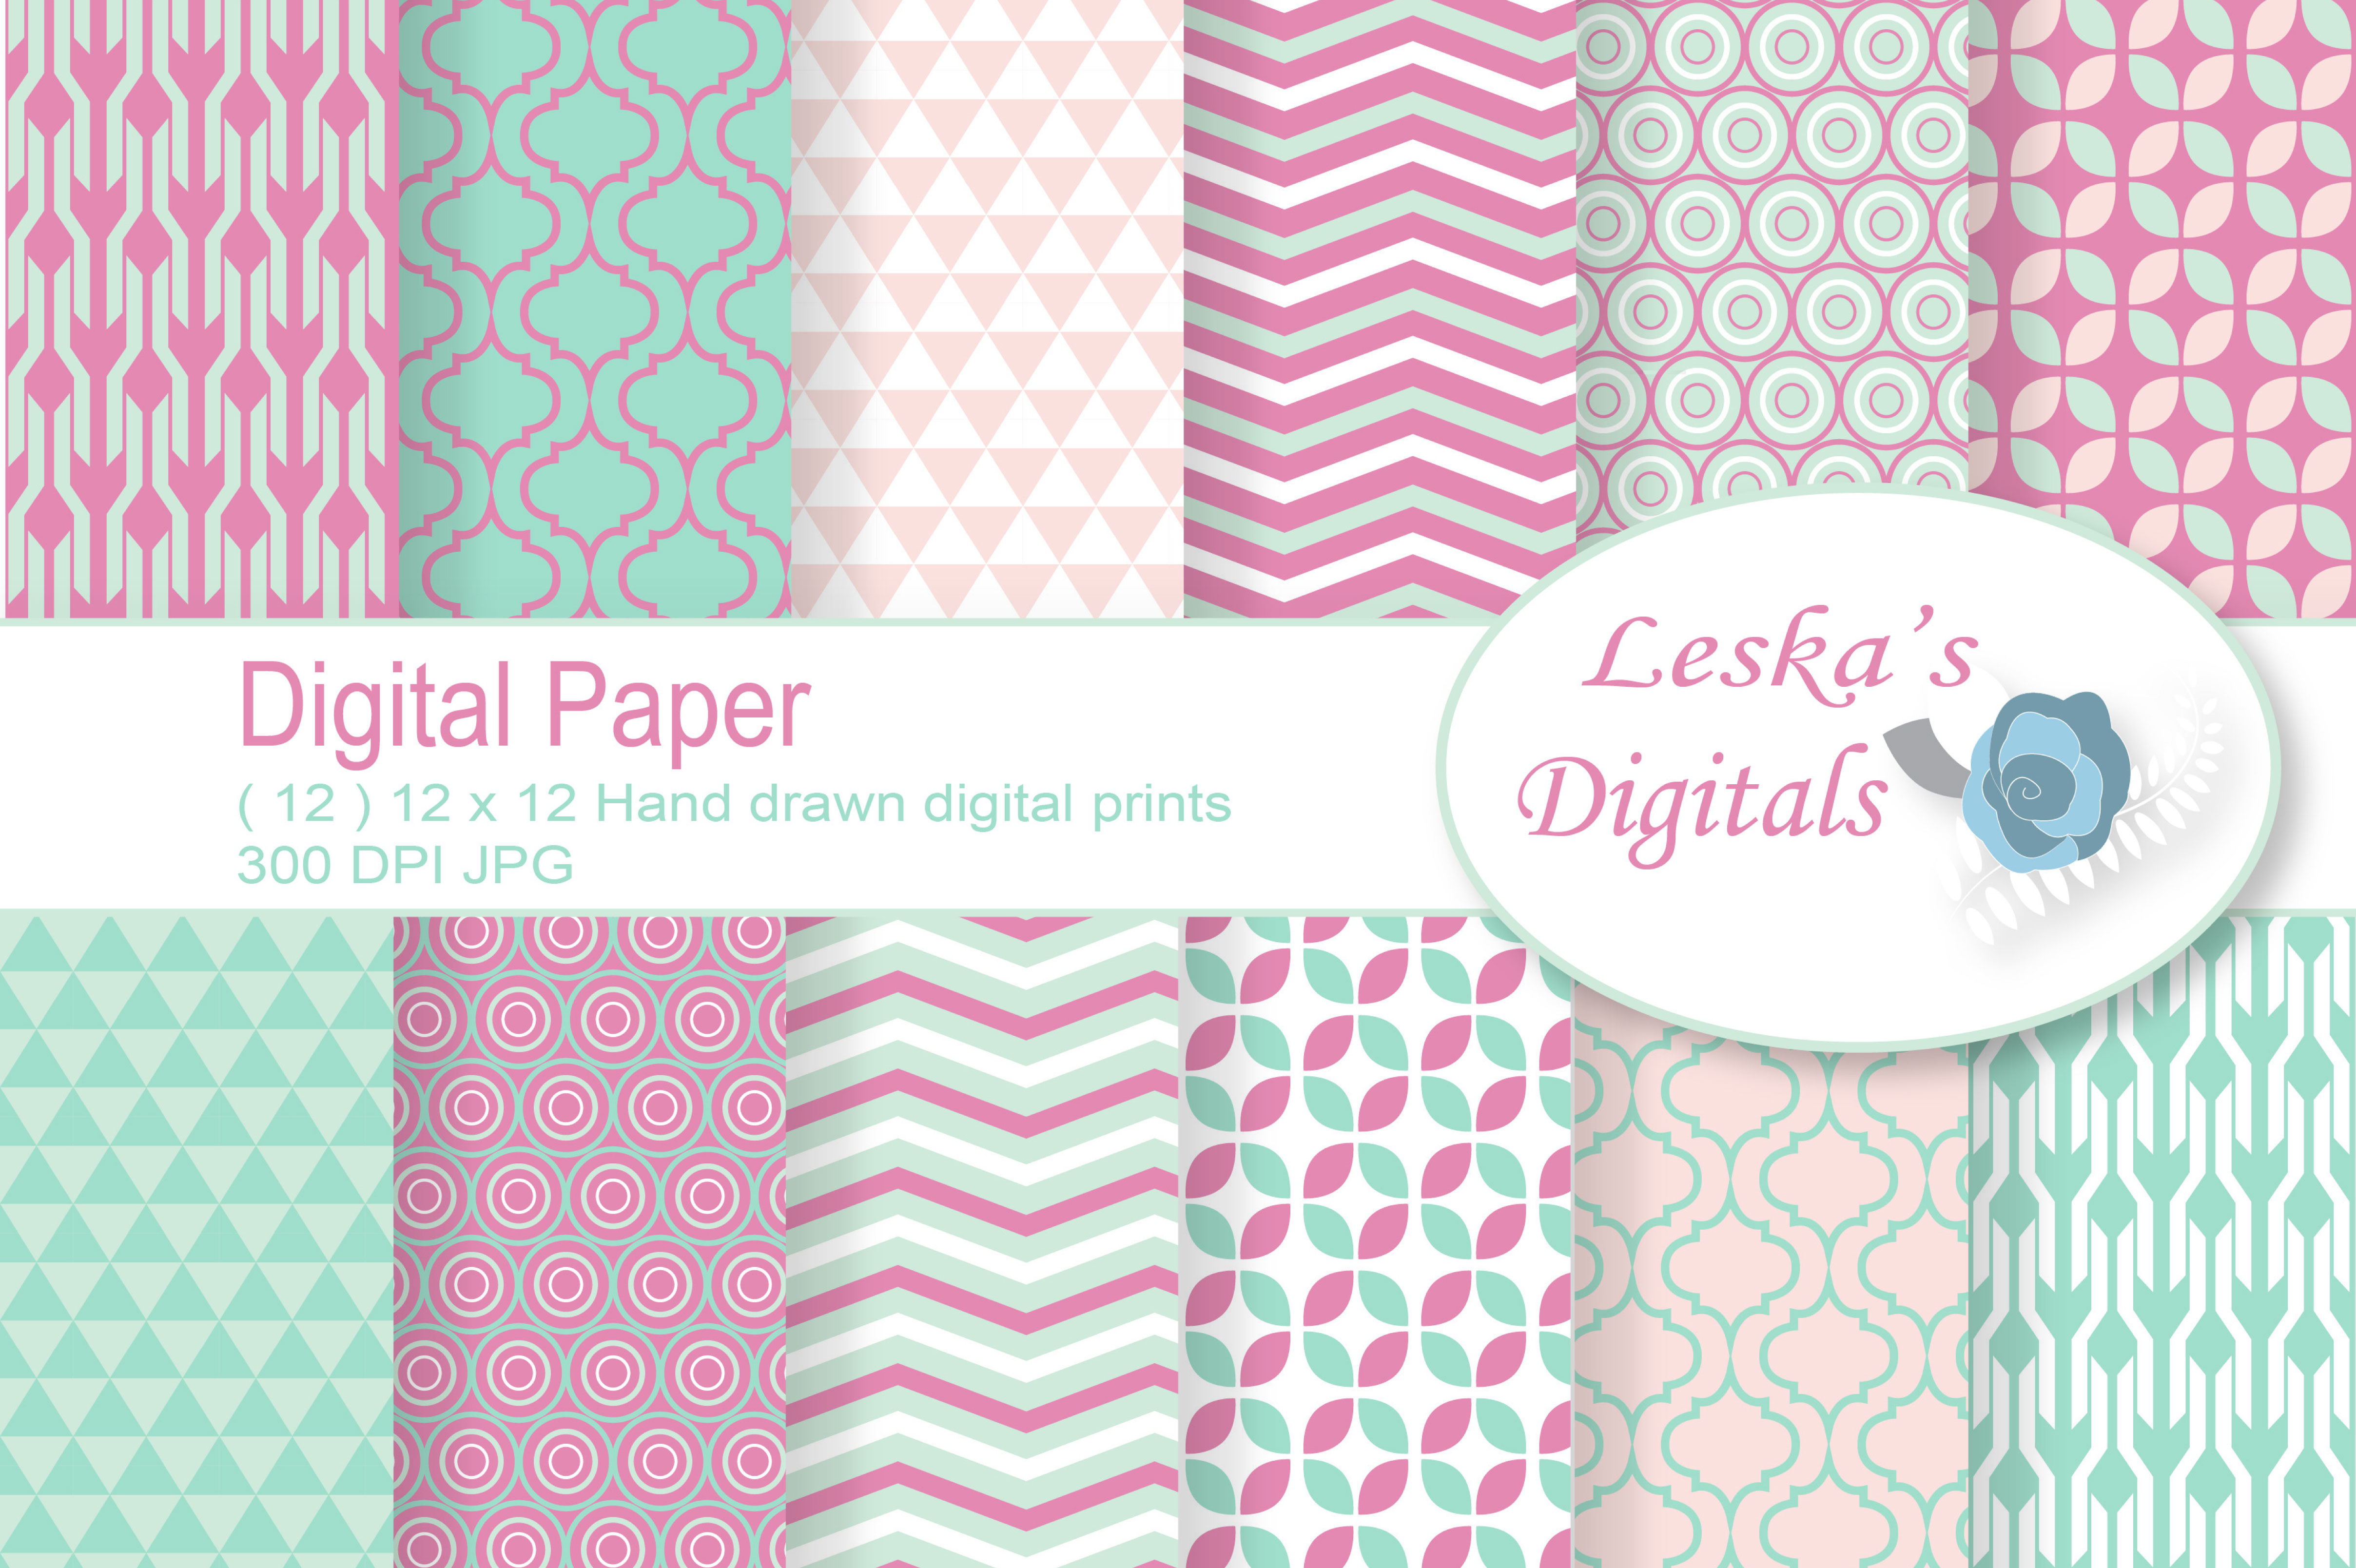 Geometric Digital Paper Patterns example image 1